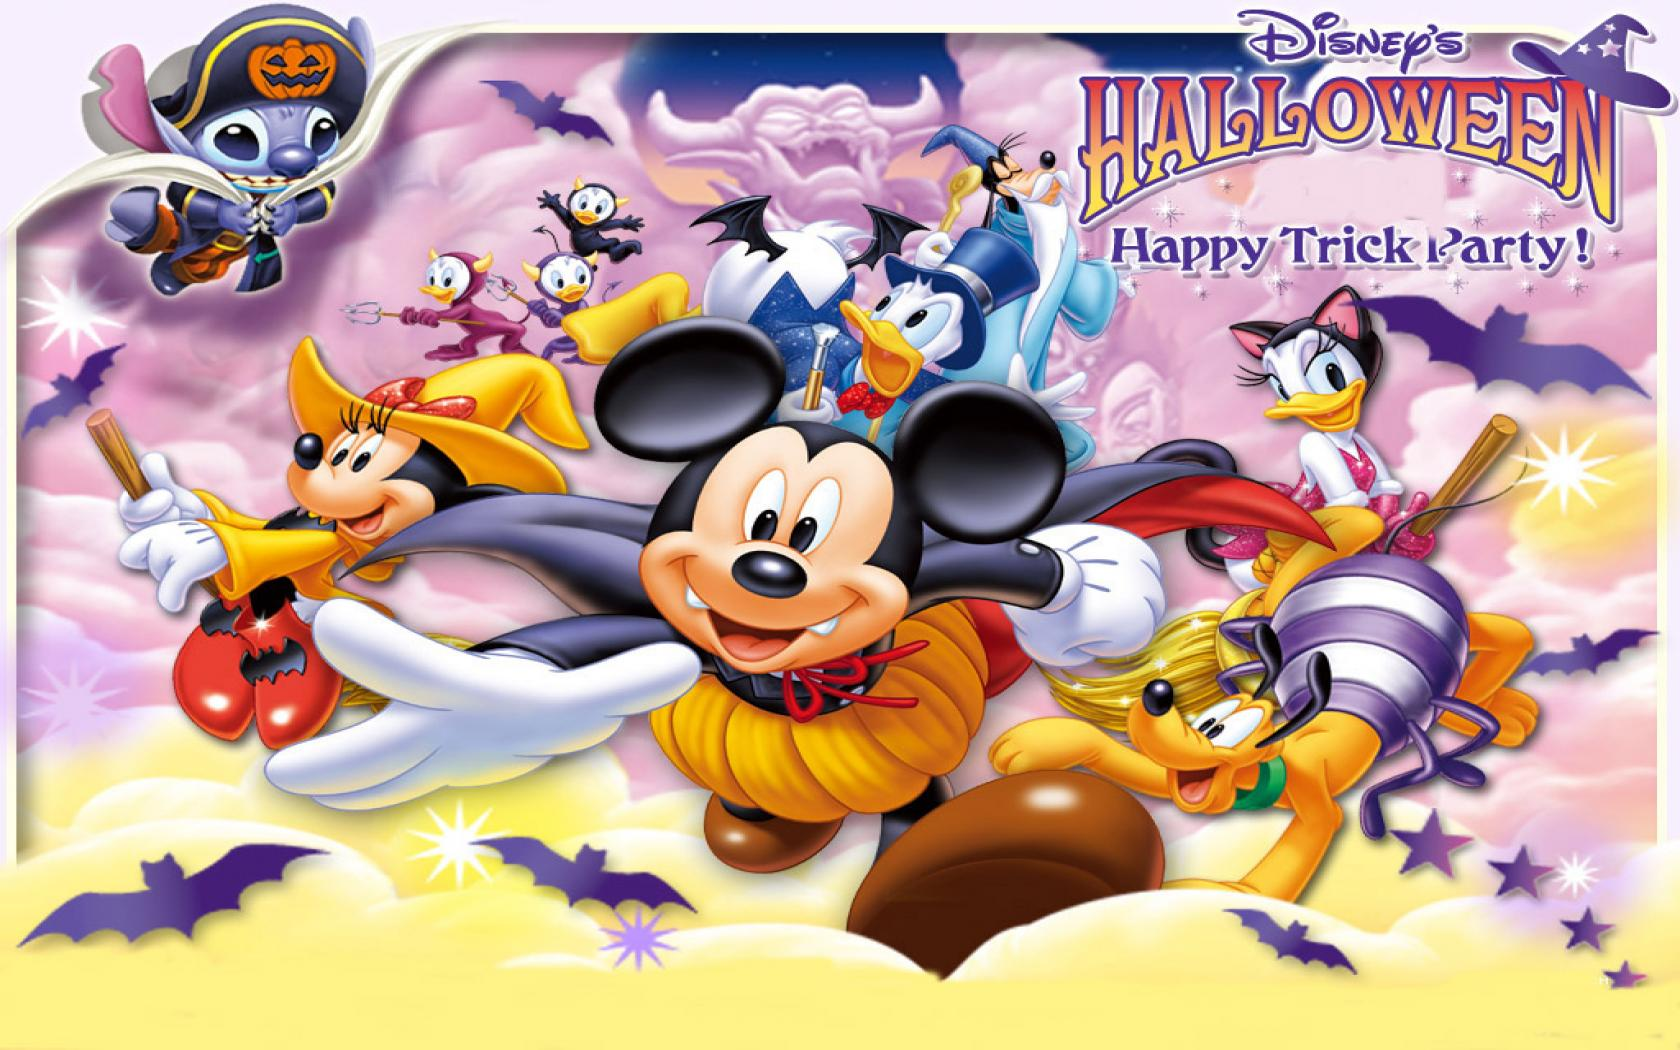 Cute Disney Halloween Backgrounds wallpaper wallpaper hd 1680x1050